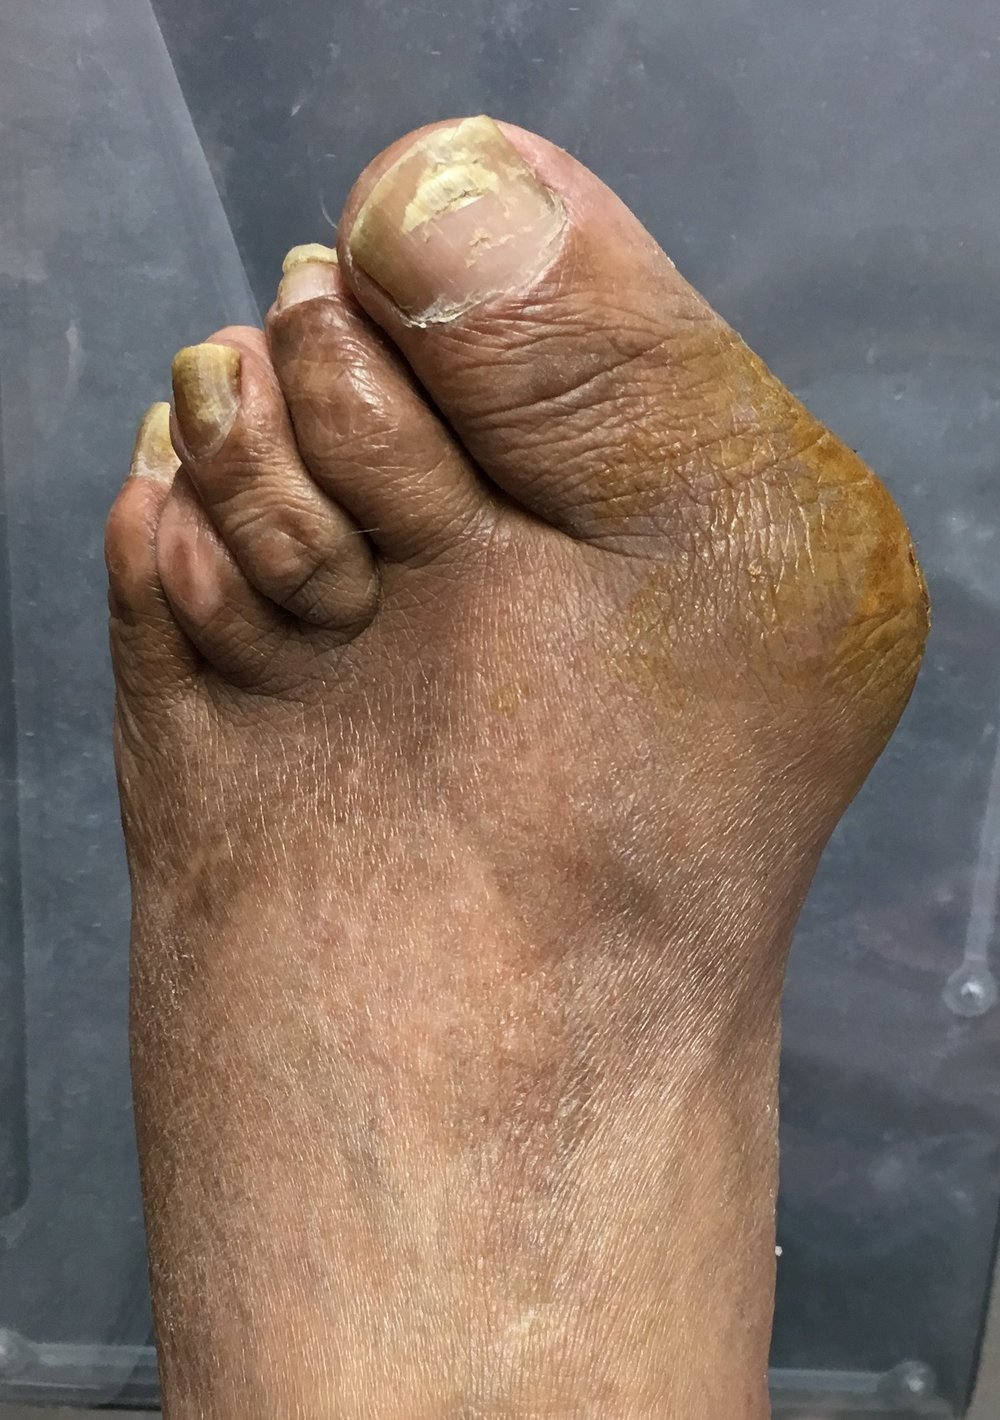 A rheumatoid foot with a severe bunion deformity and associated ulcer at the bony prominence. The brown color is betadine paint on the ulcer (not seen here).